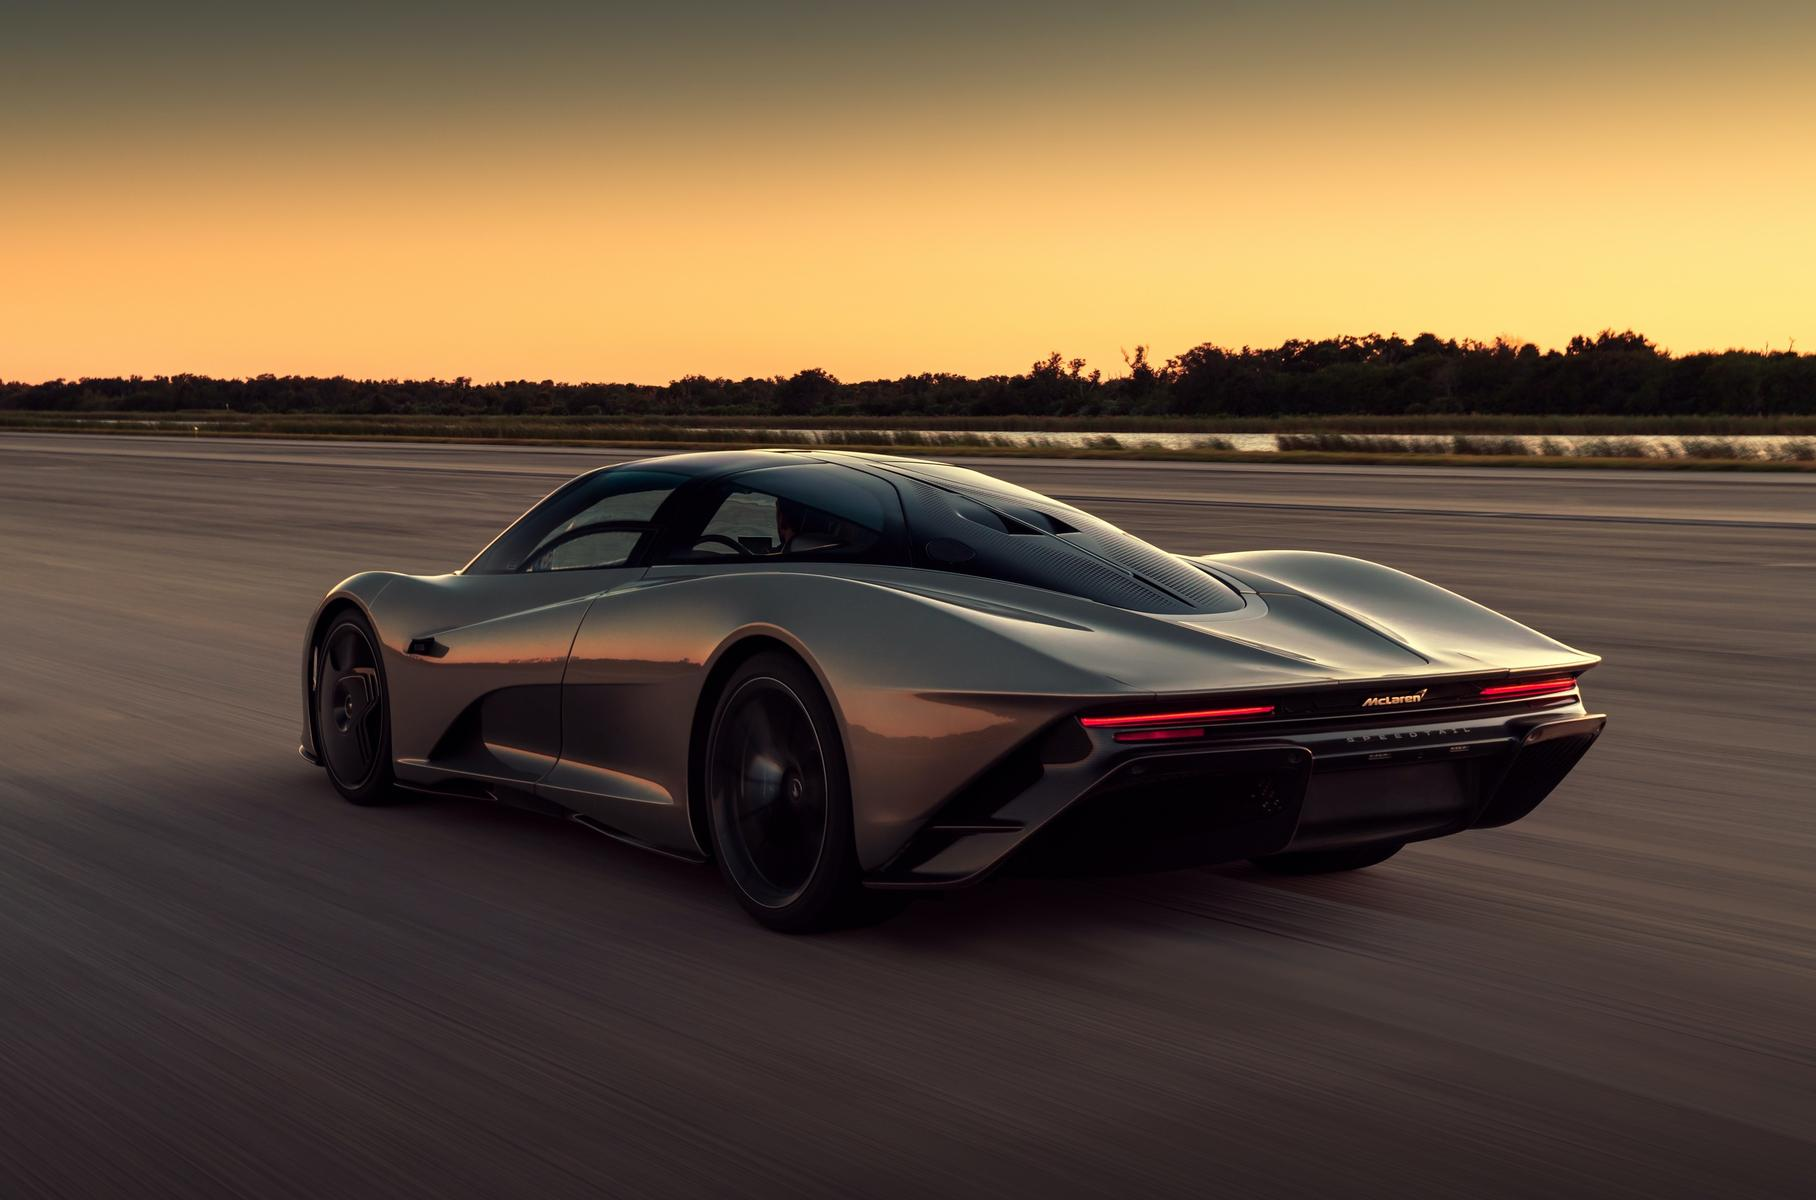 Супергибрид McLaren Speedtail 30 раз разогнался до 403 км/ч